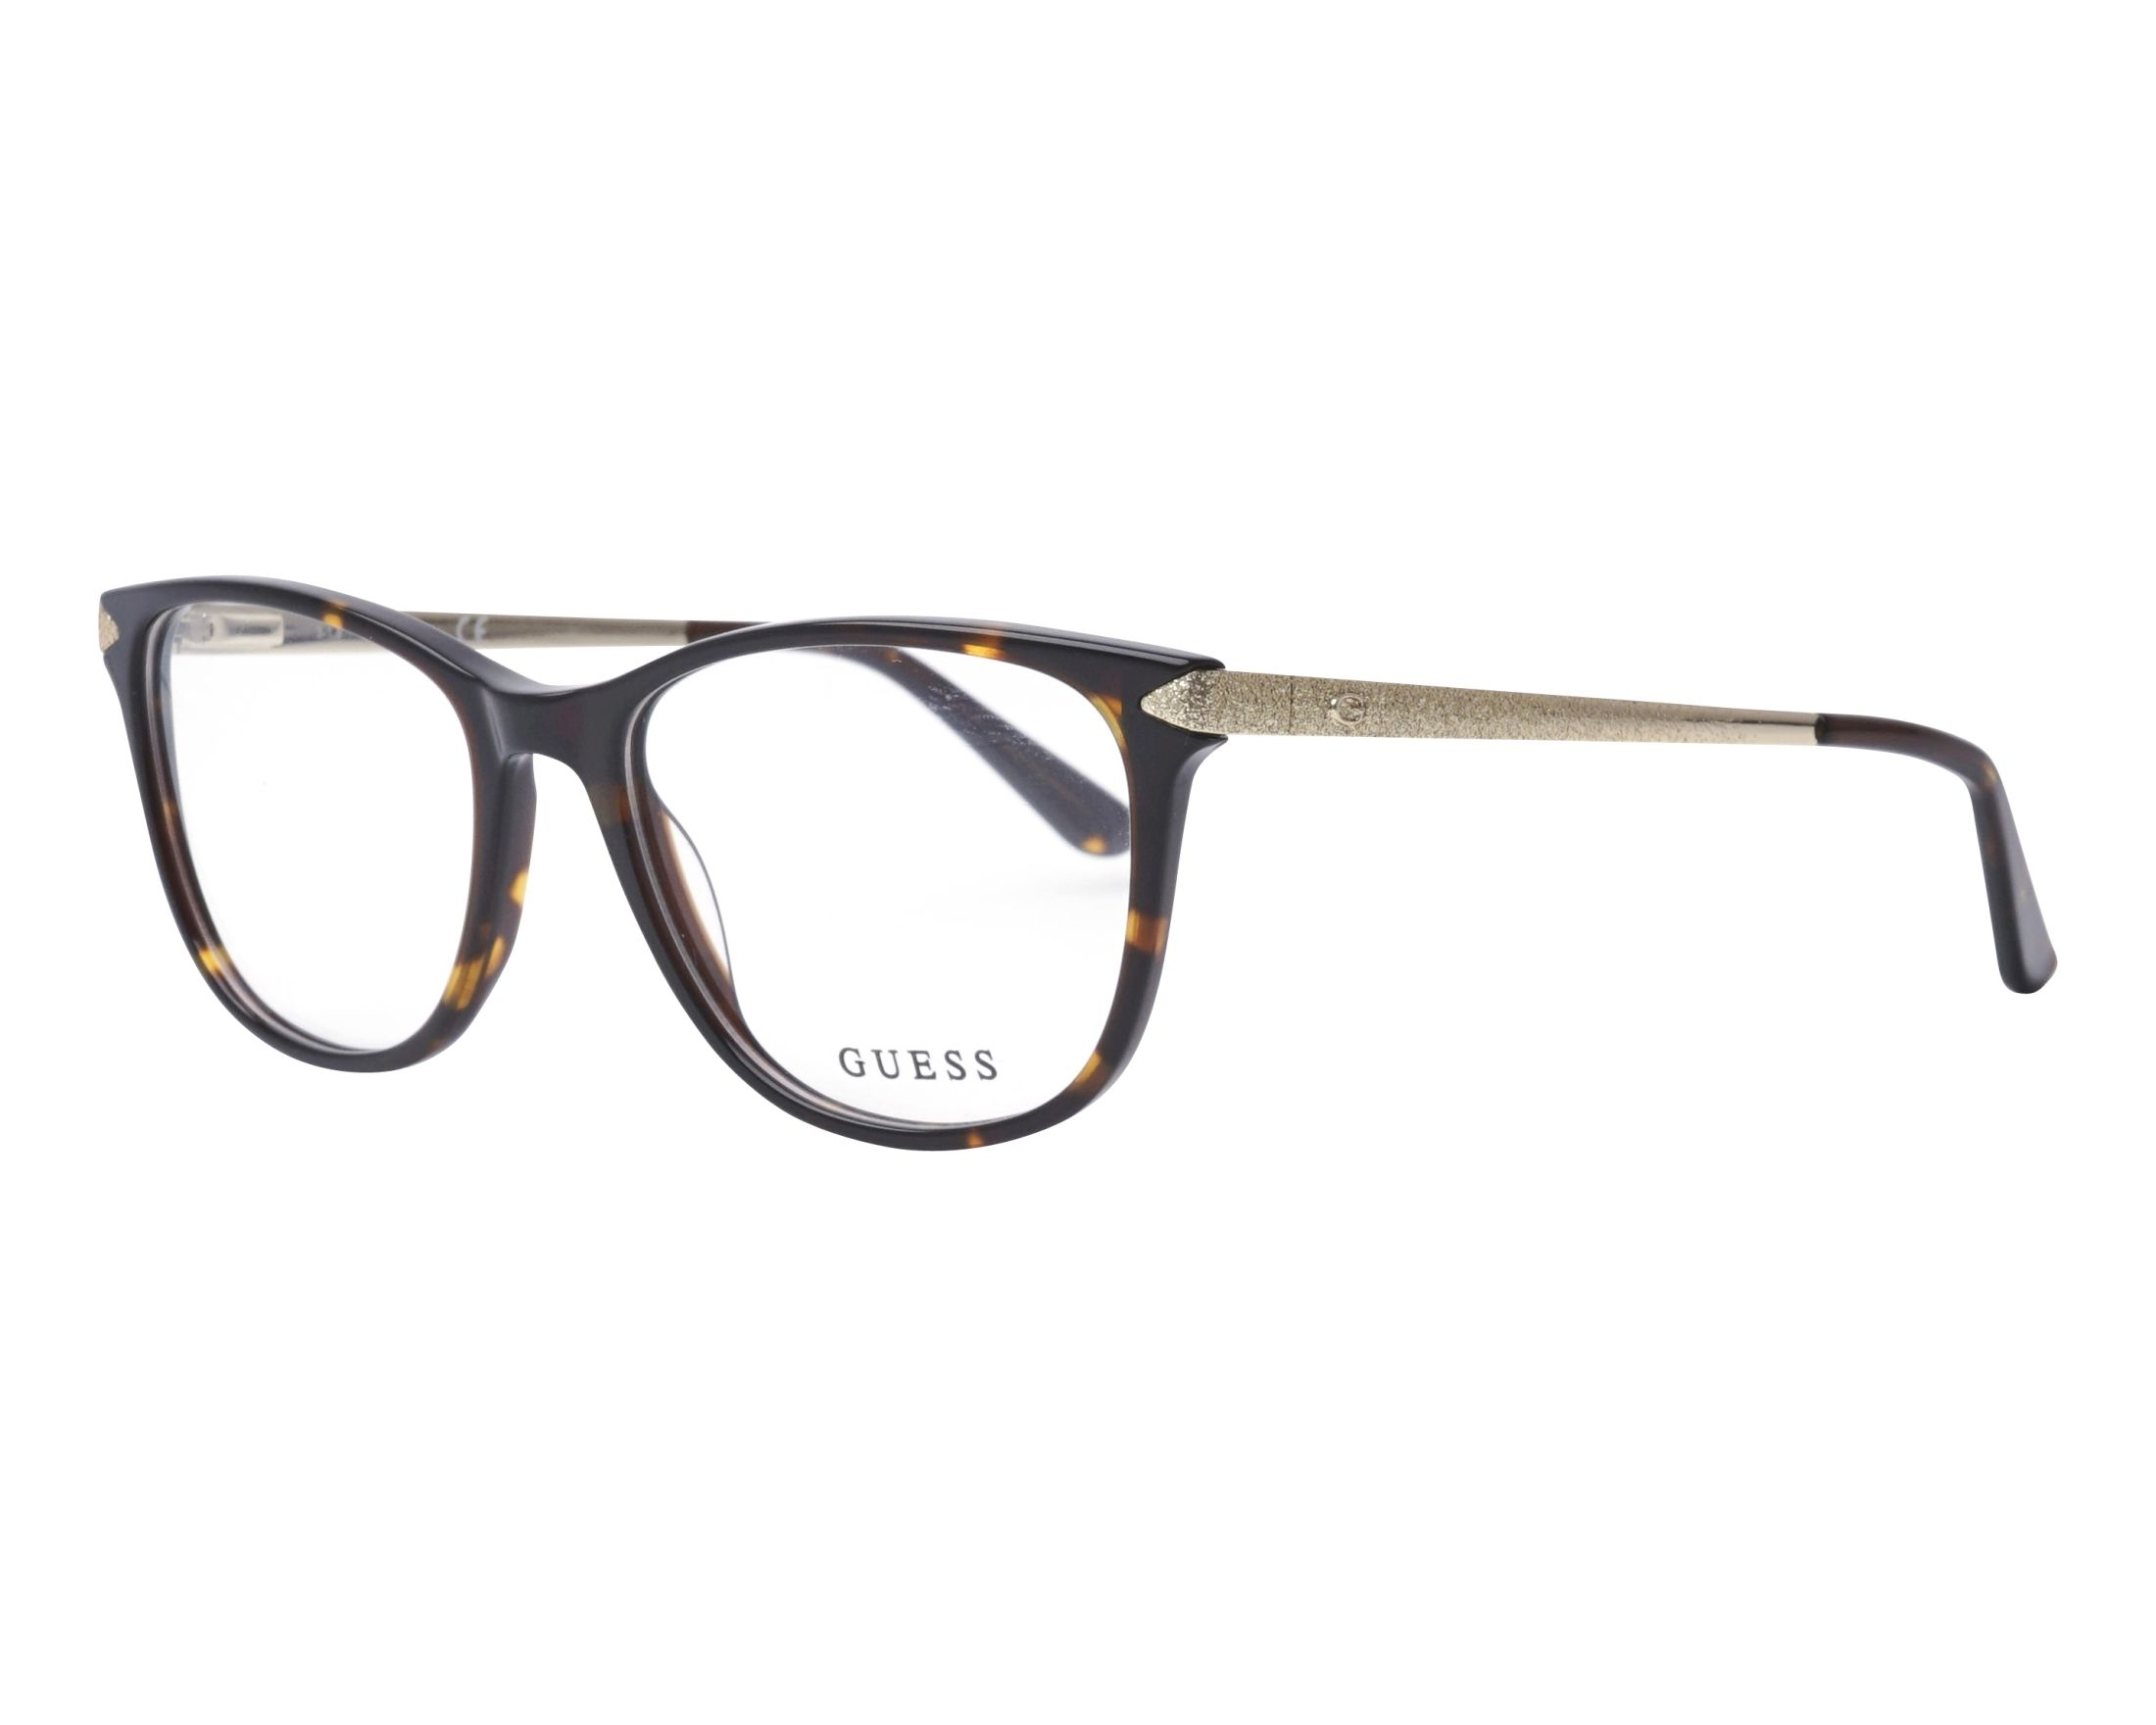 eyeglasses Guess GU-2684 052 53-17 Havana Gold profile view